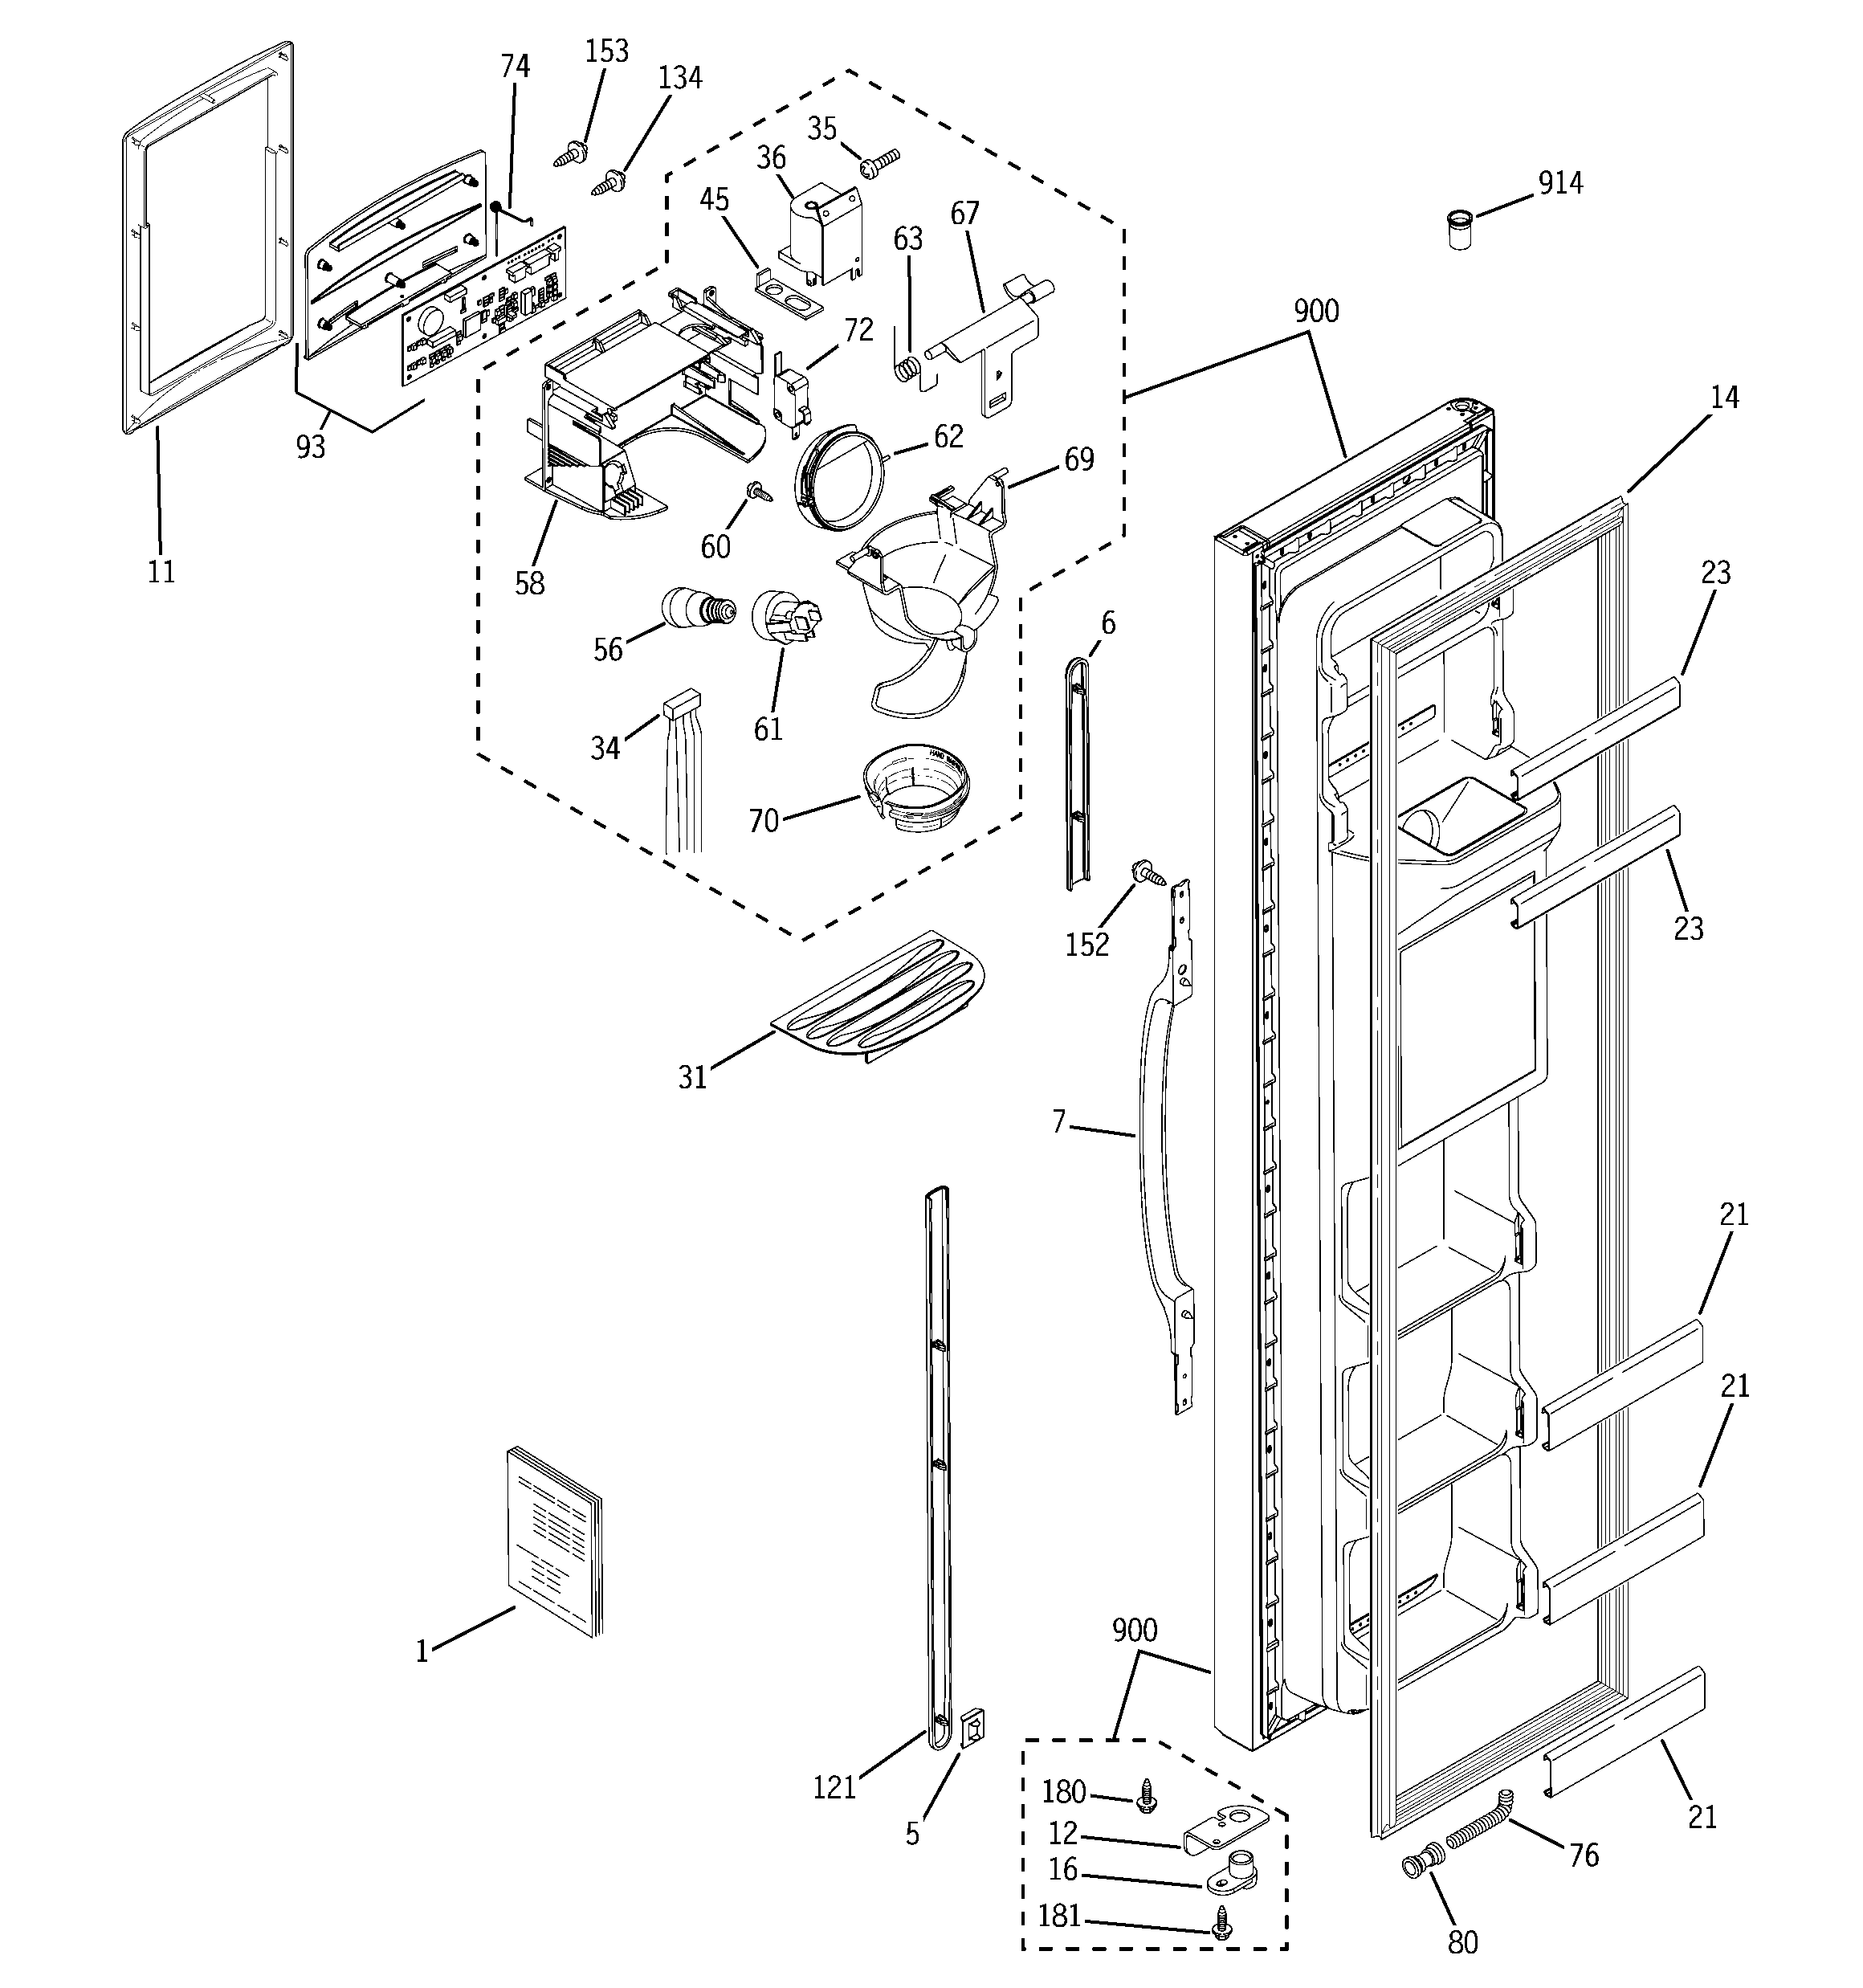 ge refrigerator schematic diagram virago 1100 wiring i need a water line for the dispensing